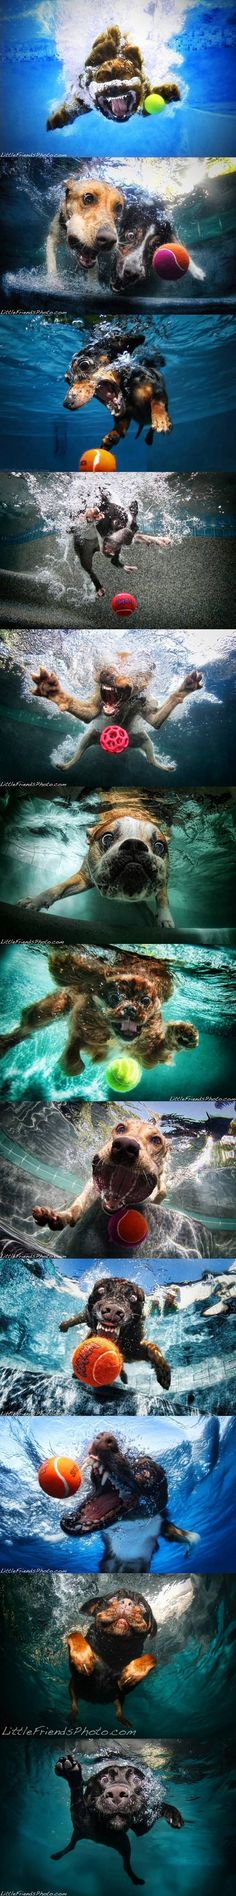 dogs underwater.....so funny